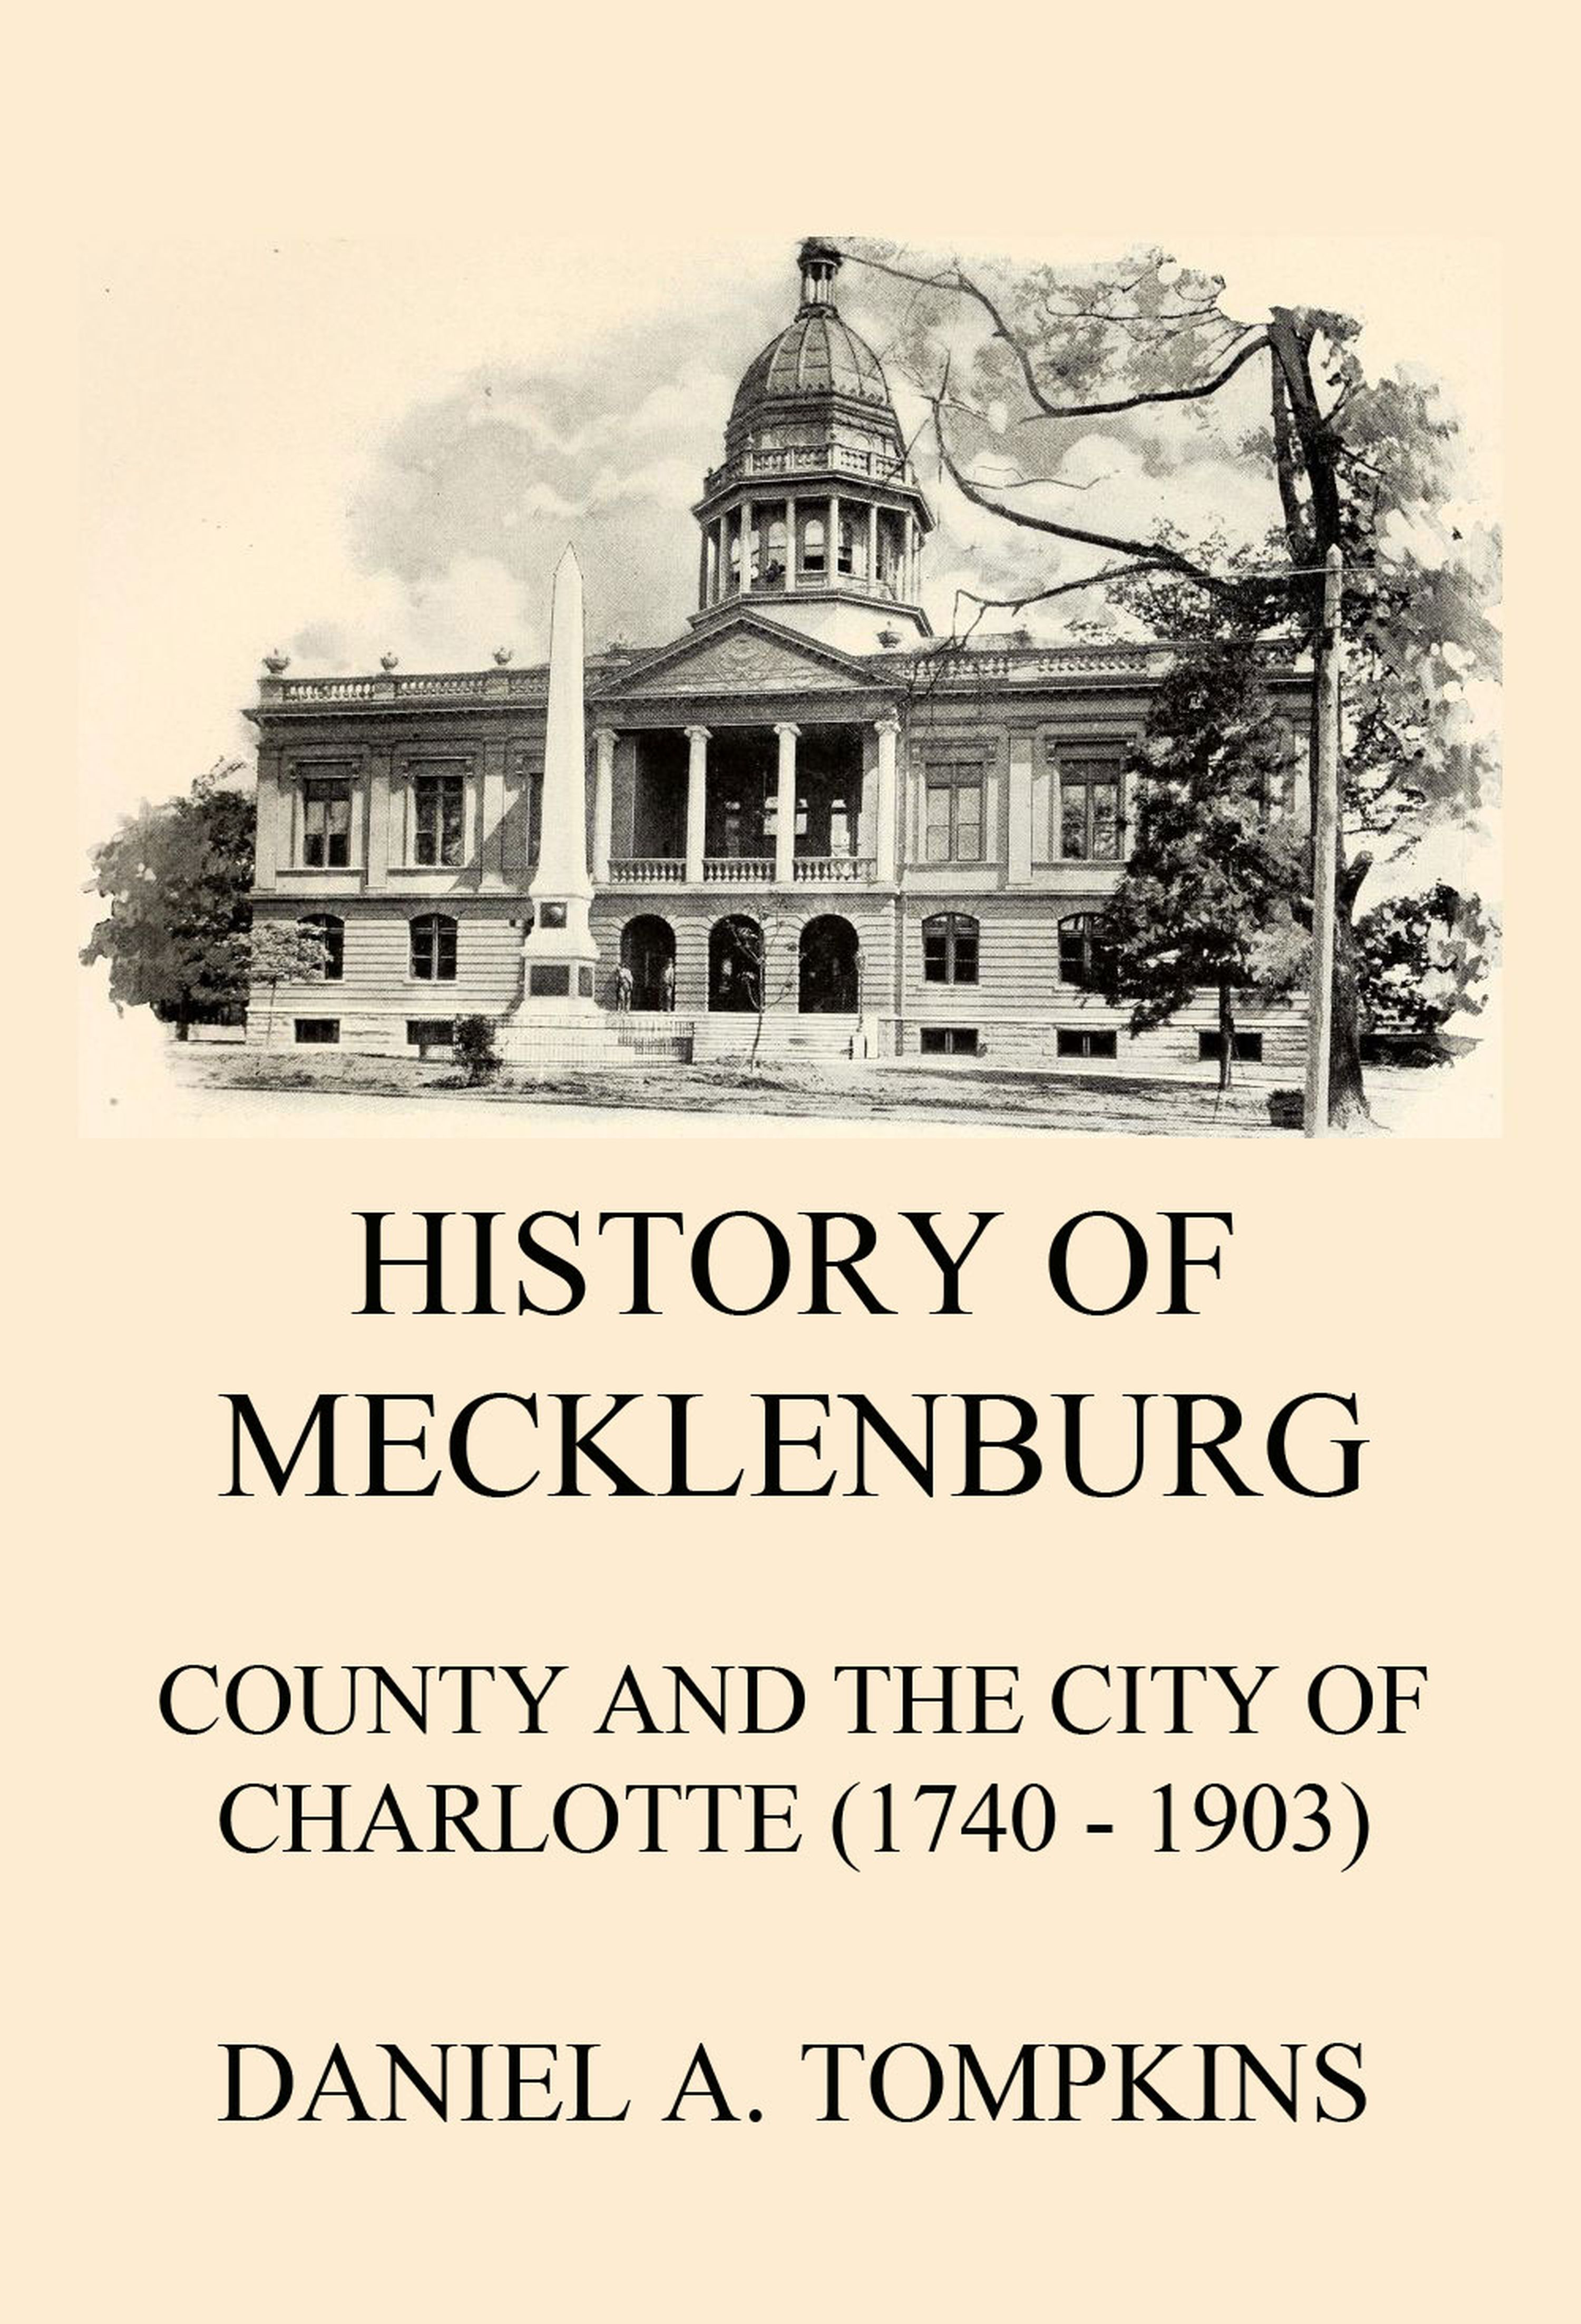 Daniel Augustus Tompkins History of Mecklenburg County and the City of Charlotte (1740 - 1903) john joseph briggs the history of melbourne in the county of derby including biographical notices of the coke melbourne and hardinge families